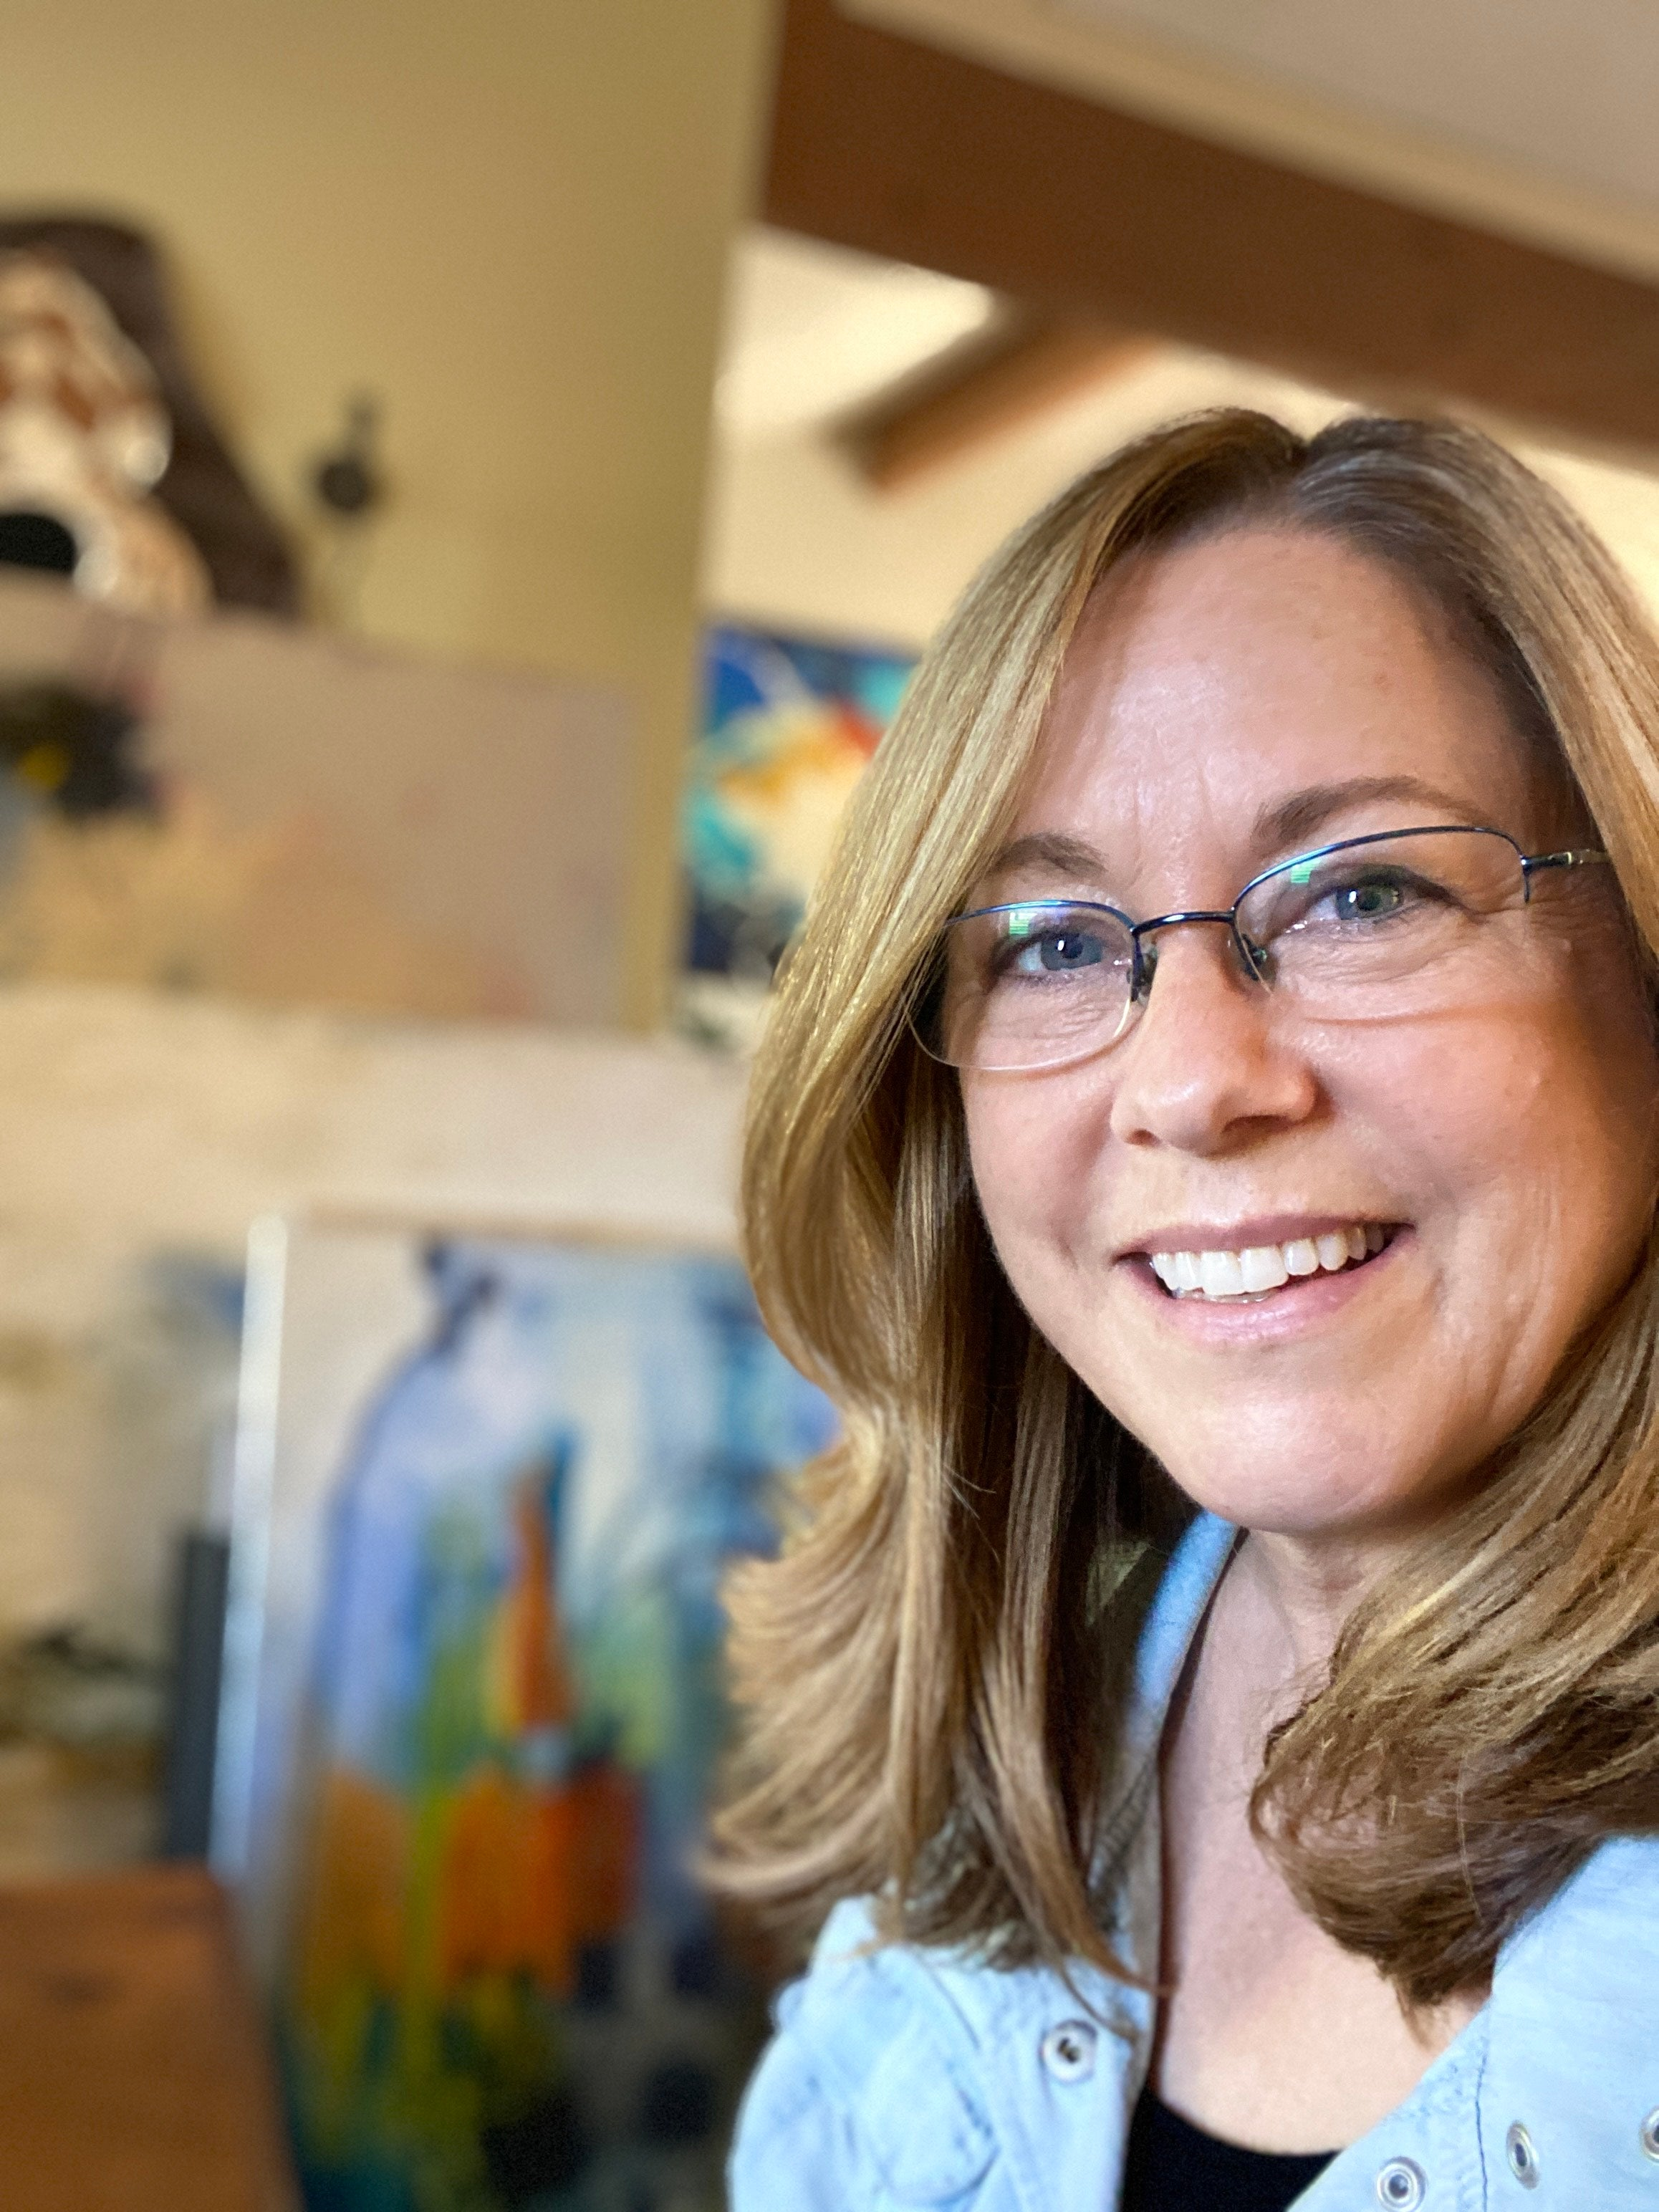 A portrait photo of San Diego artist, Susie Zol, who is featured in our store at Bench Home